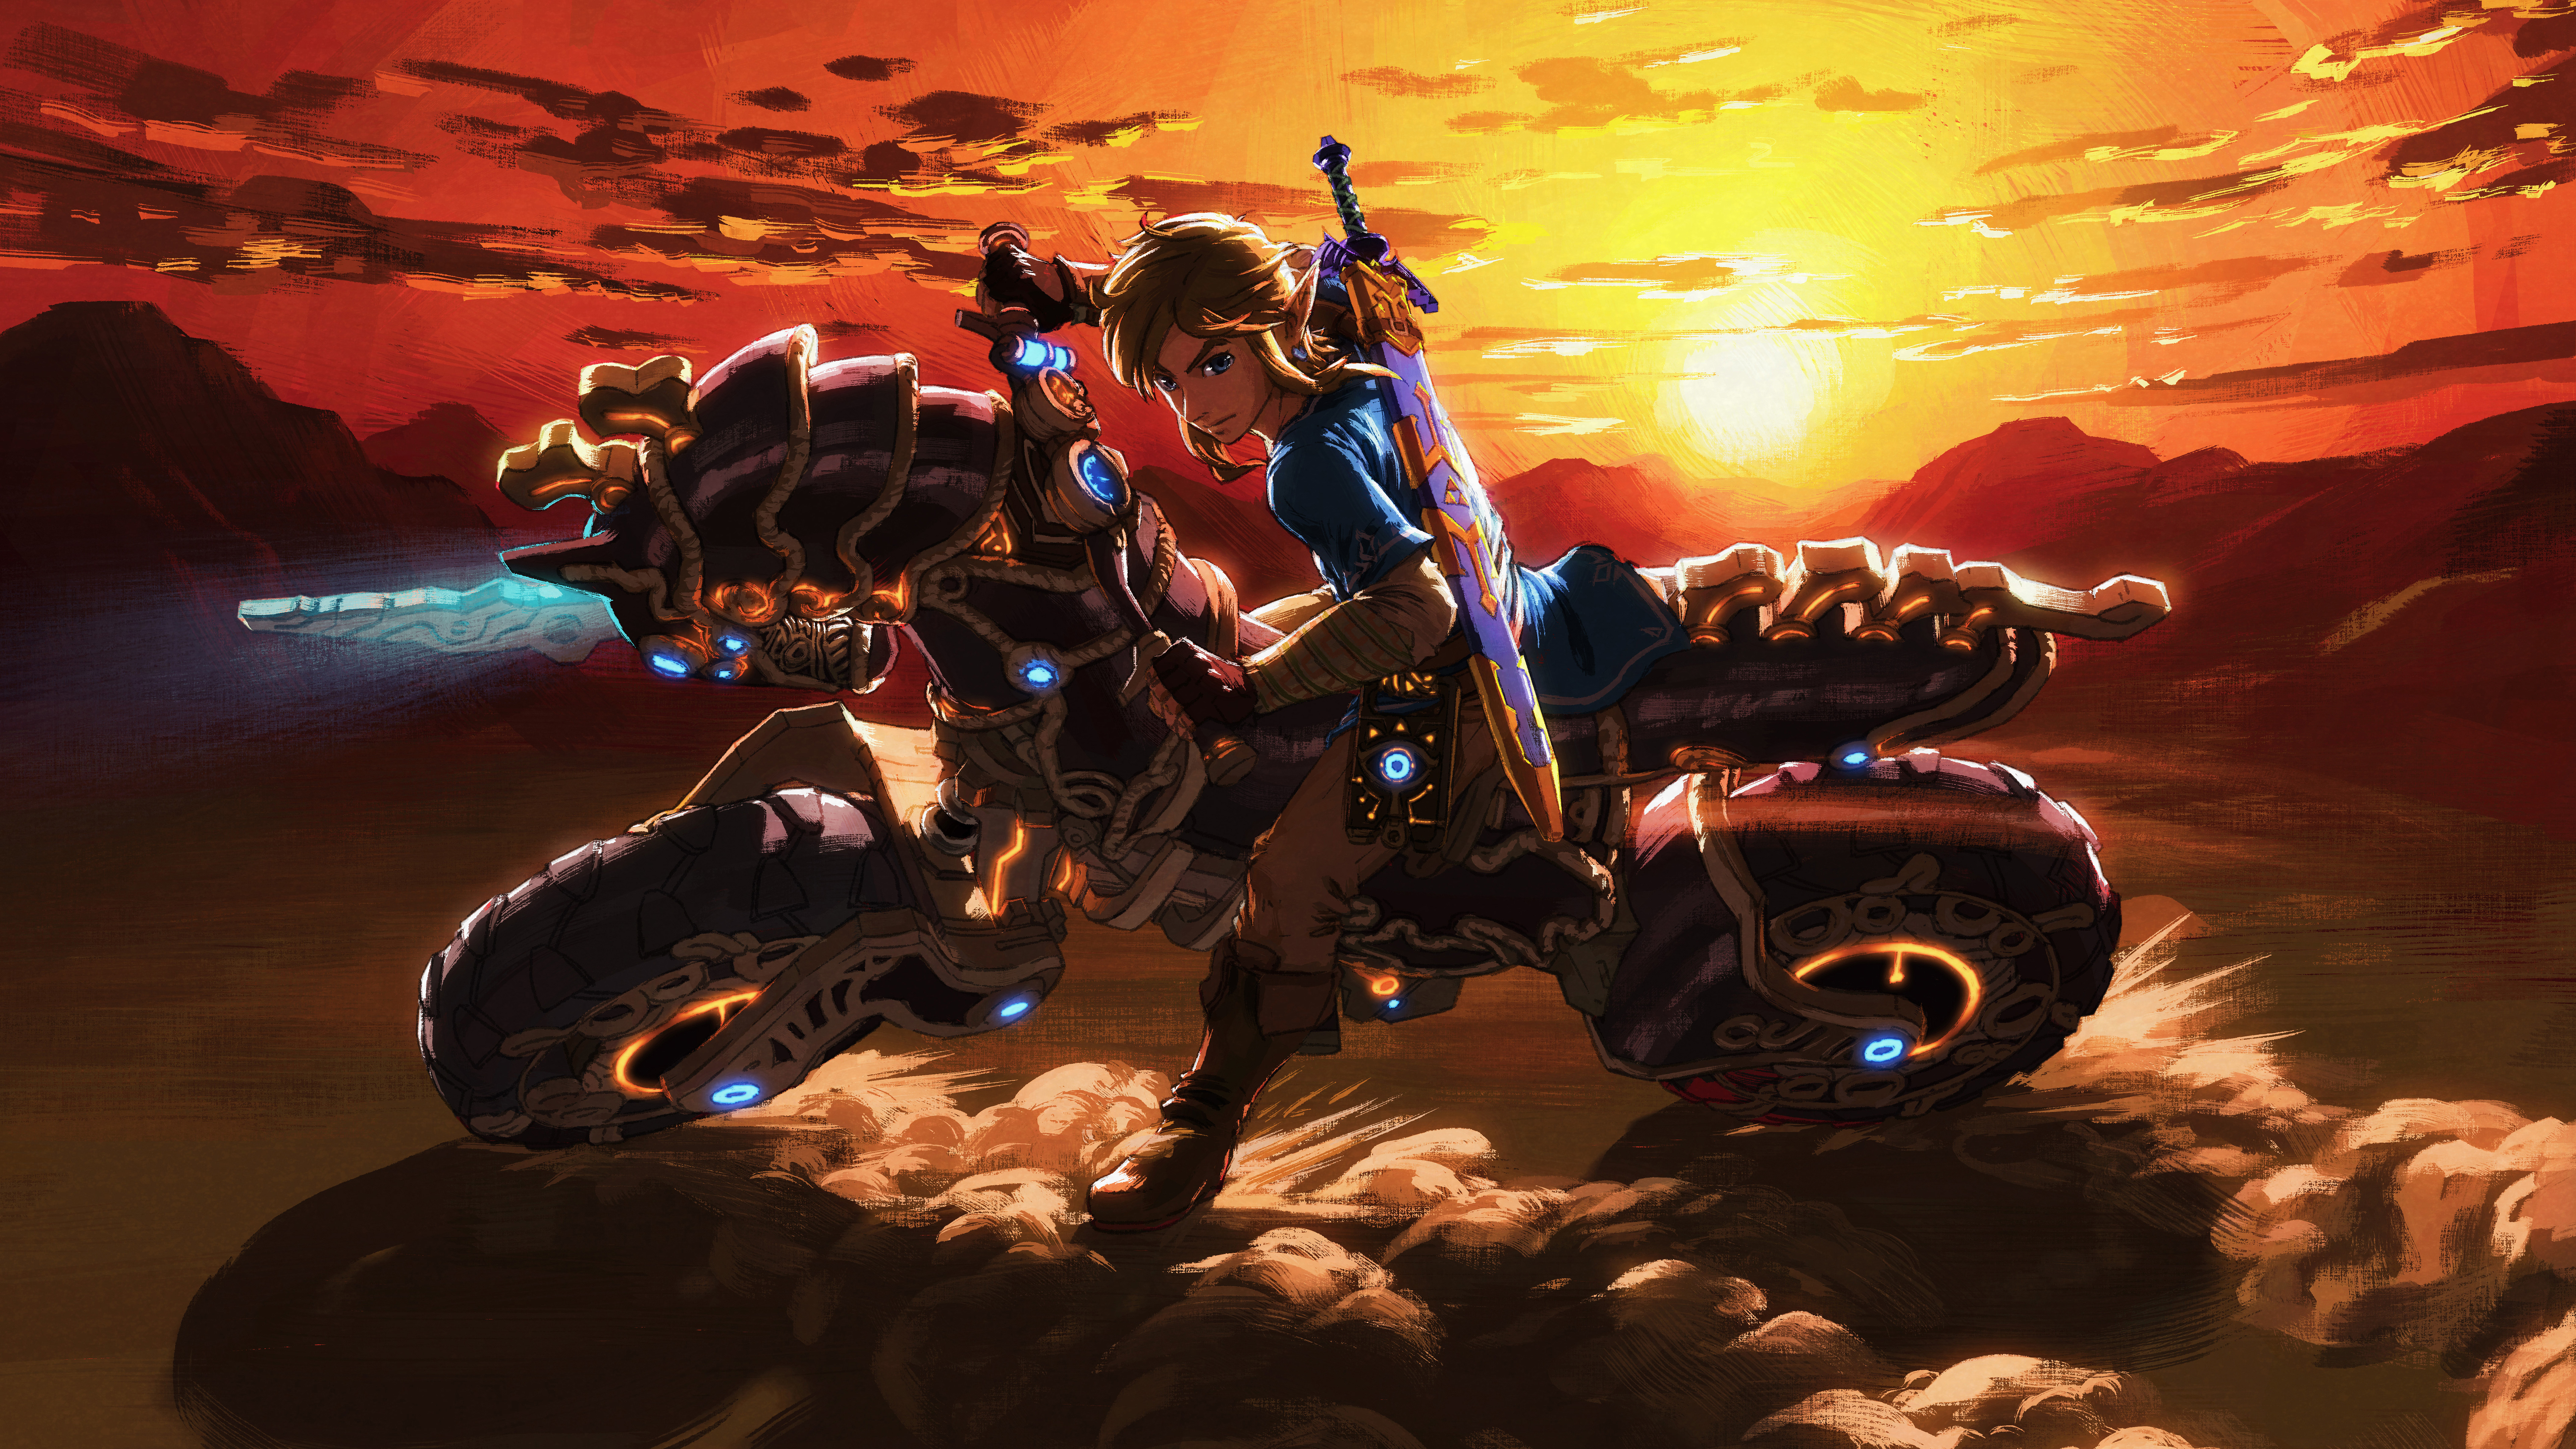 The Master Cycle Zero The Legend Of Zelda Breath Of The Wild 7680x4320